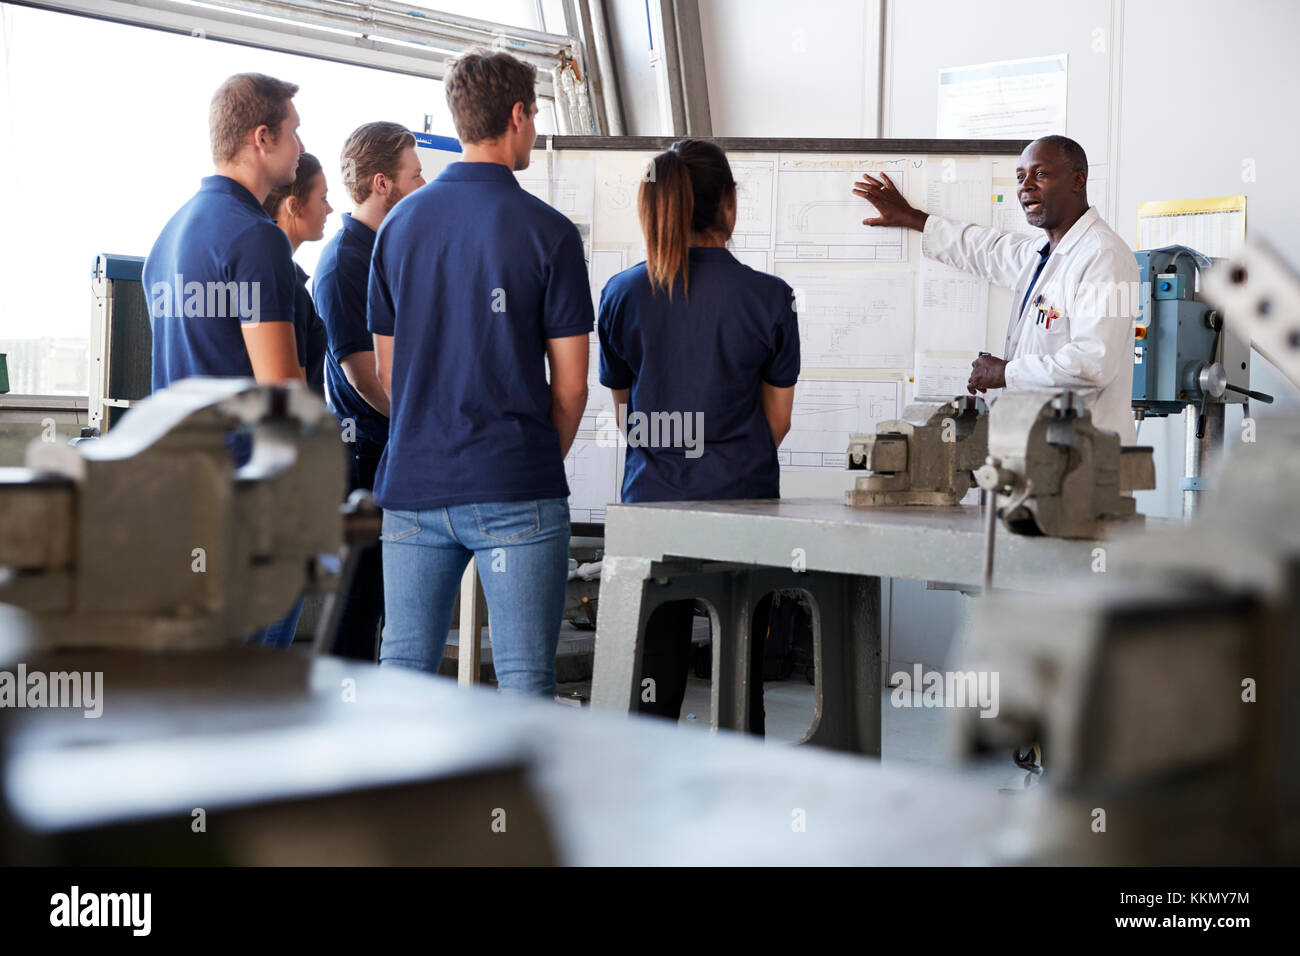 Engineering apprentices watching presentation at whiteboard - Stock Image